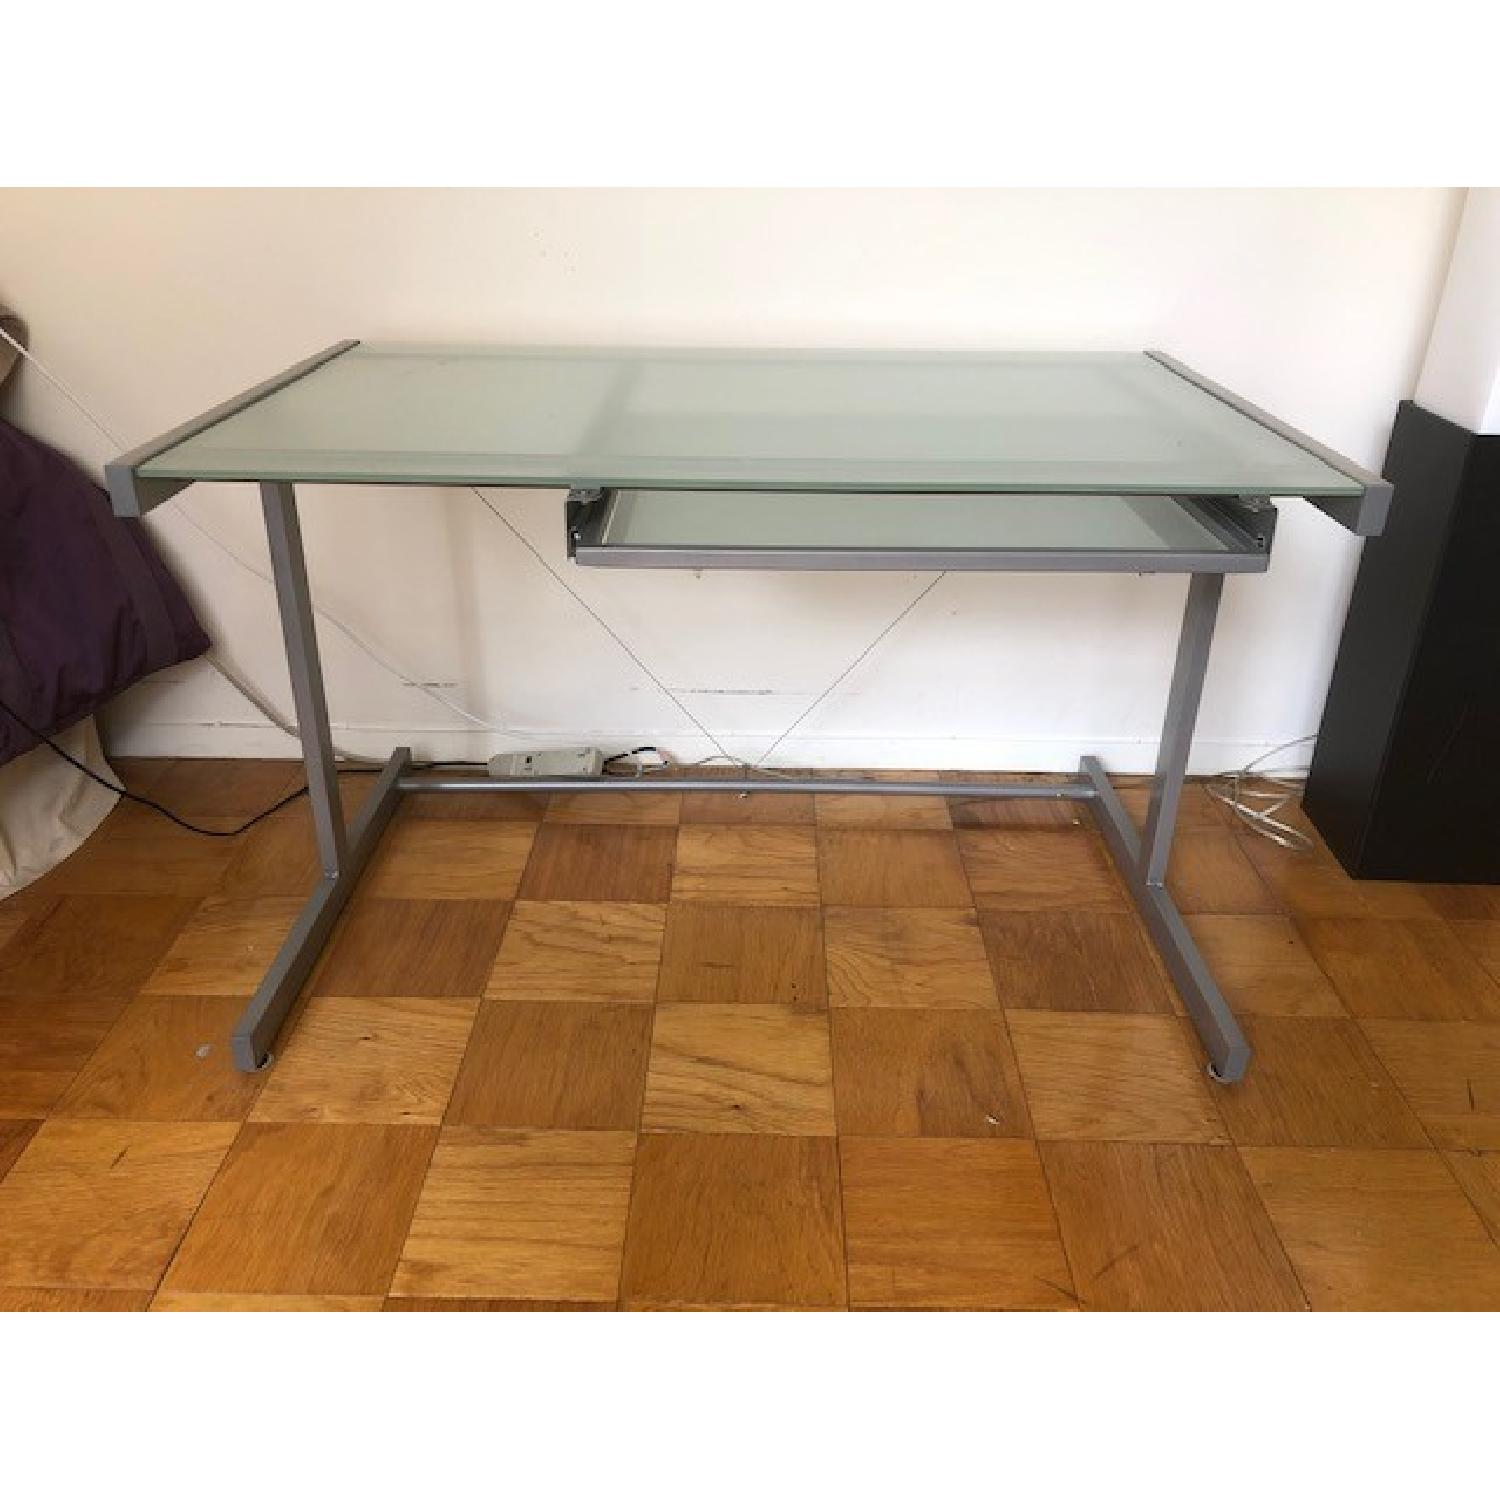 Crate & Barrel Chrome Computer Desk w/ File Cabinet - image-1